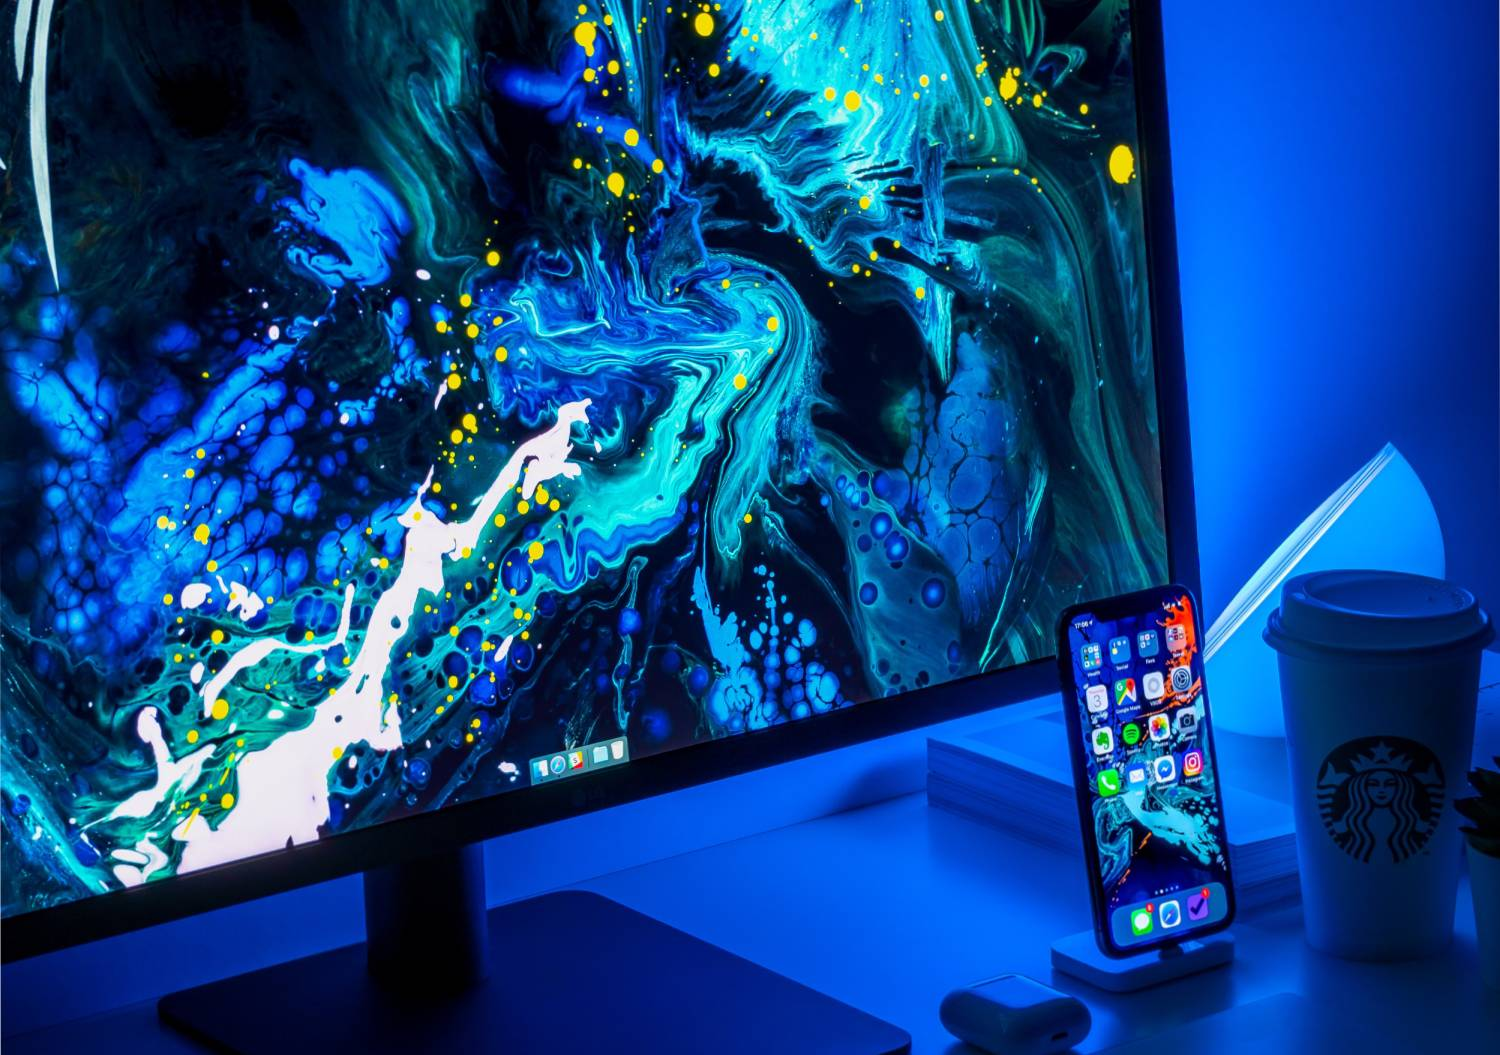 Where to find great wallpapers to spice up your devices